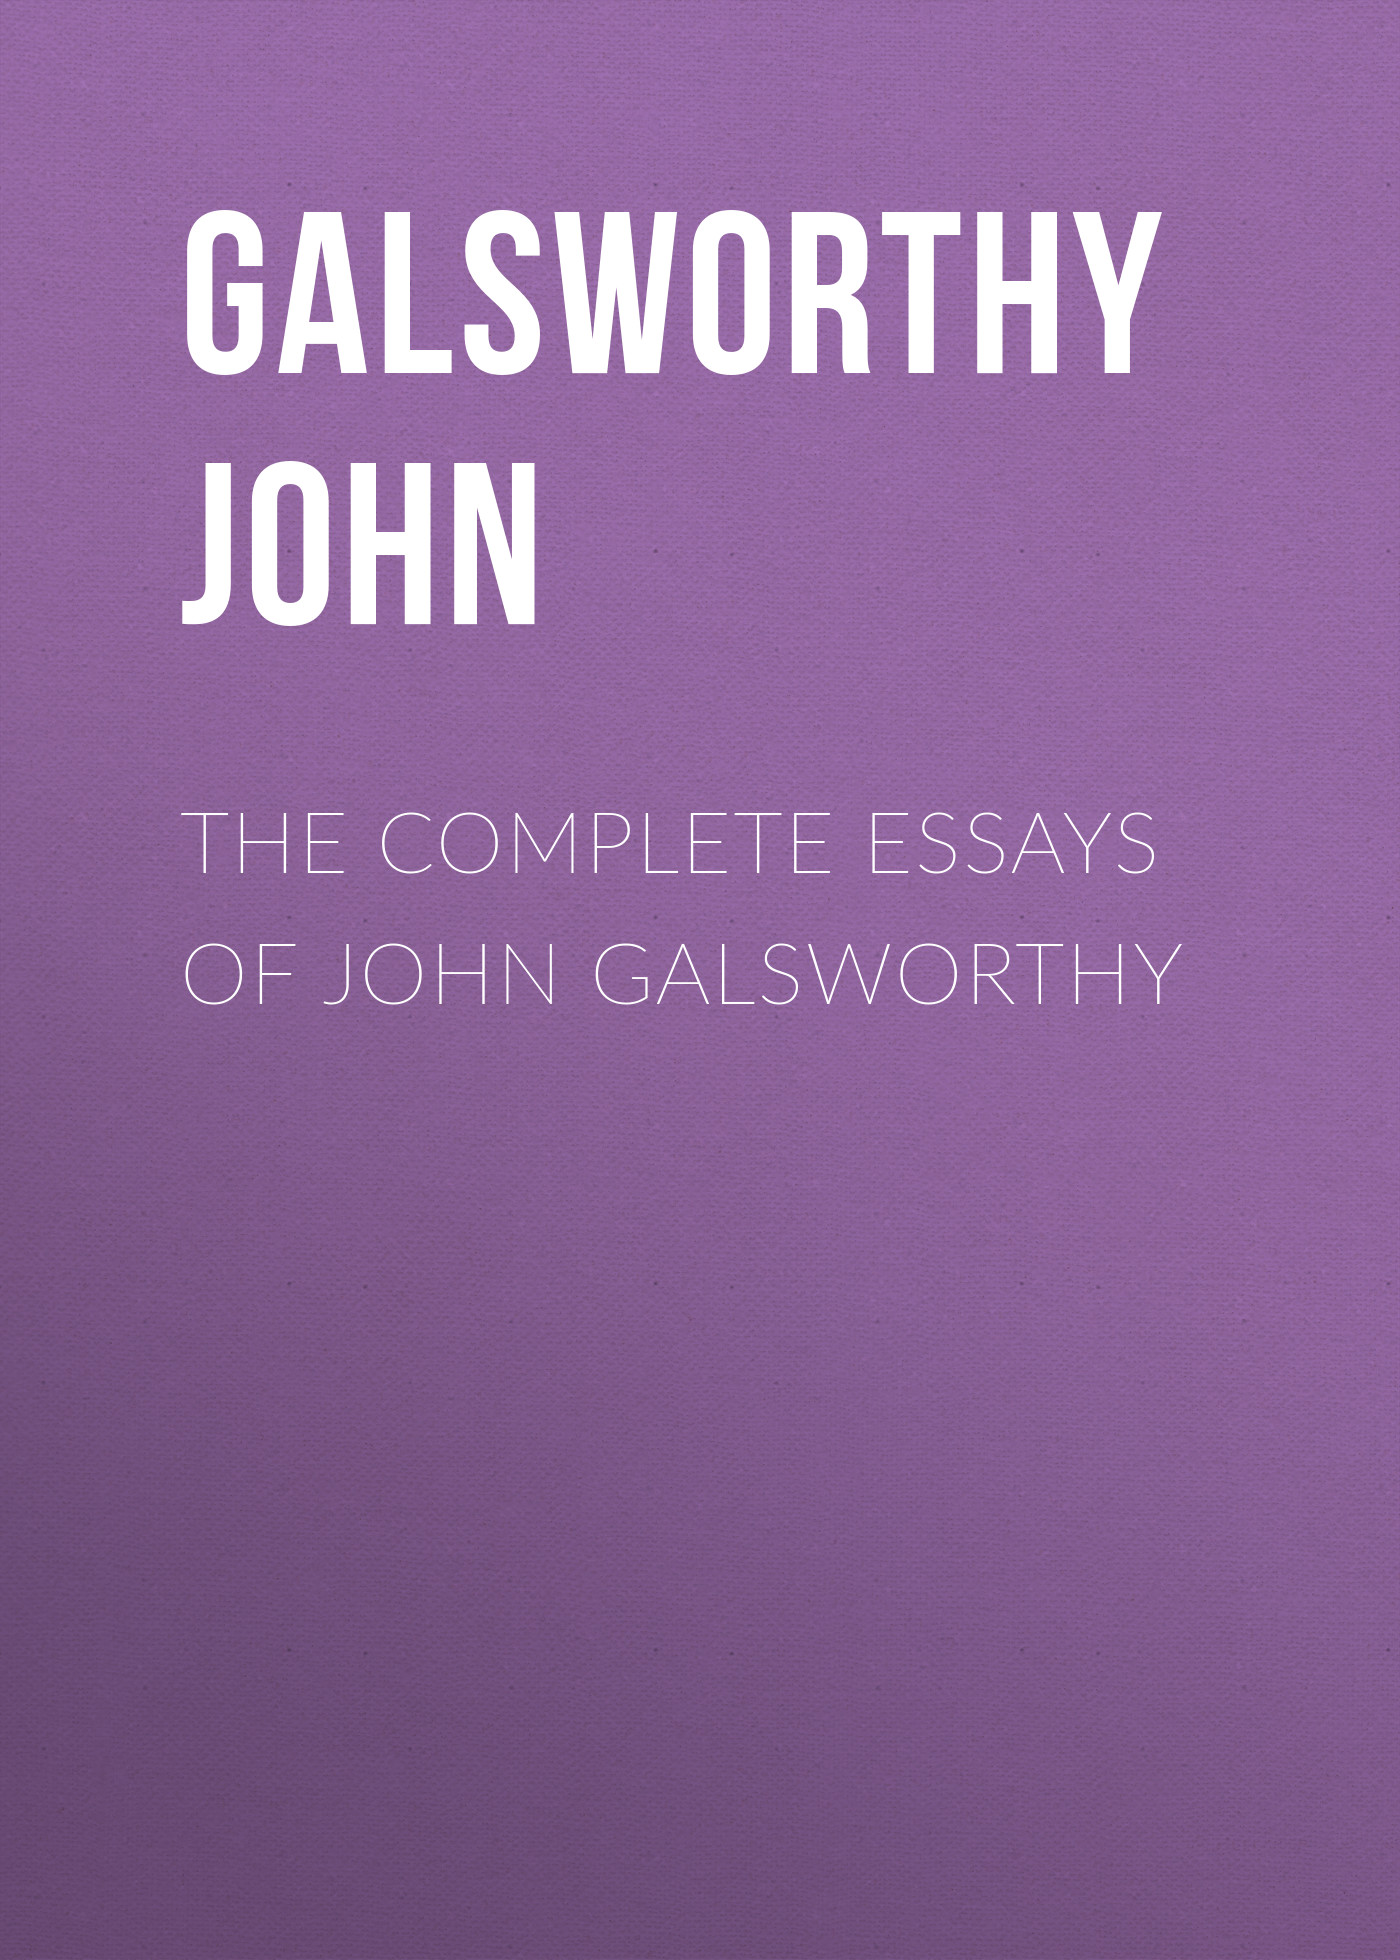 Galsworthy John The Complete Essays of John Galsworthy galsworthy john quotes and images from the works of john galsworthy